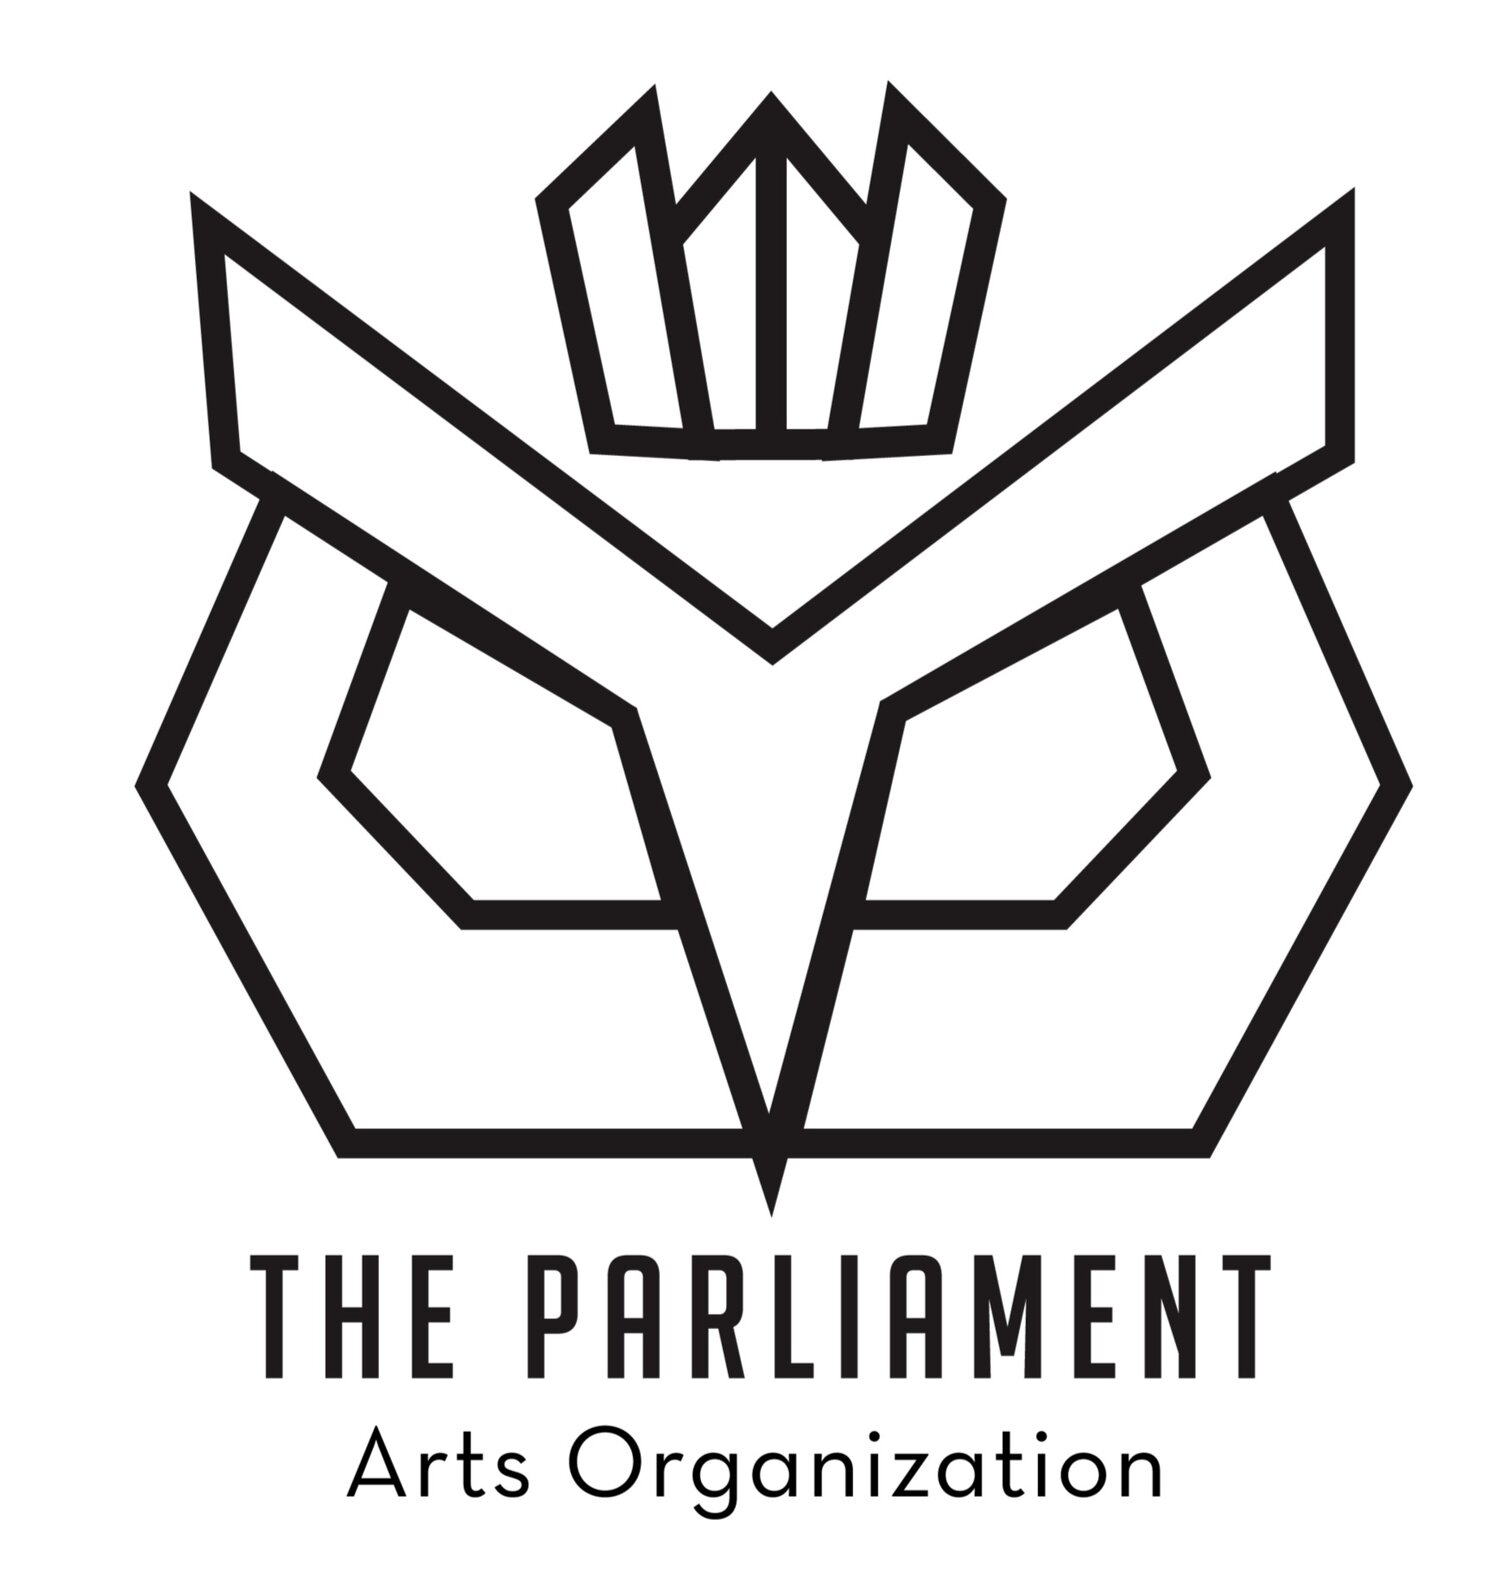 Parliament Arts Organization